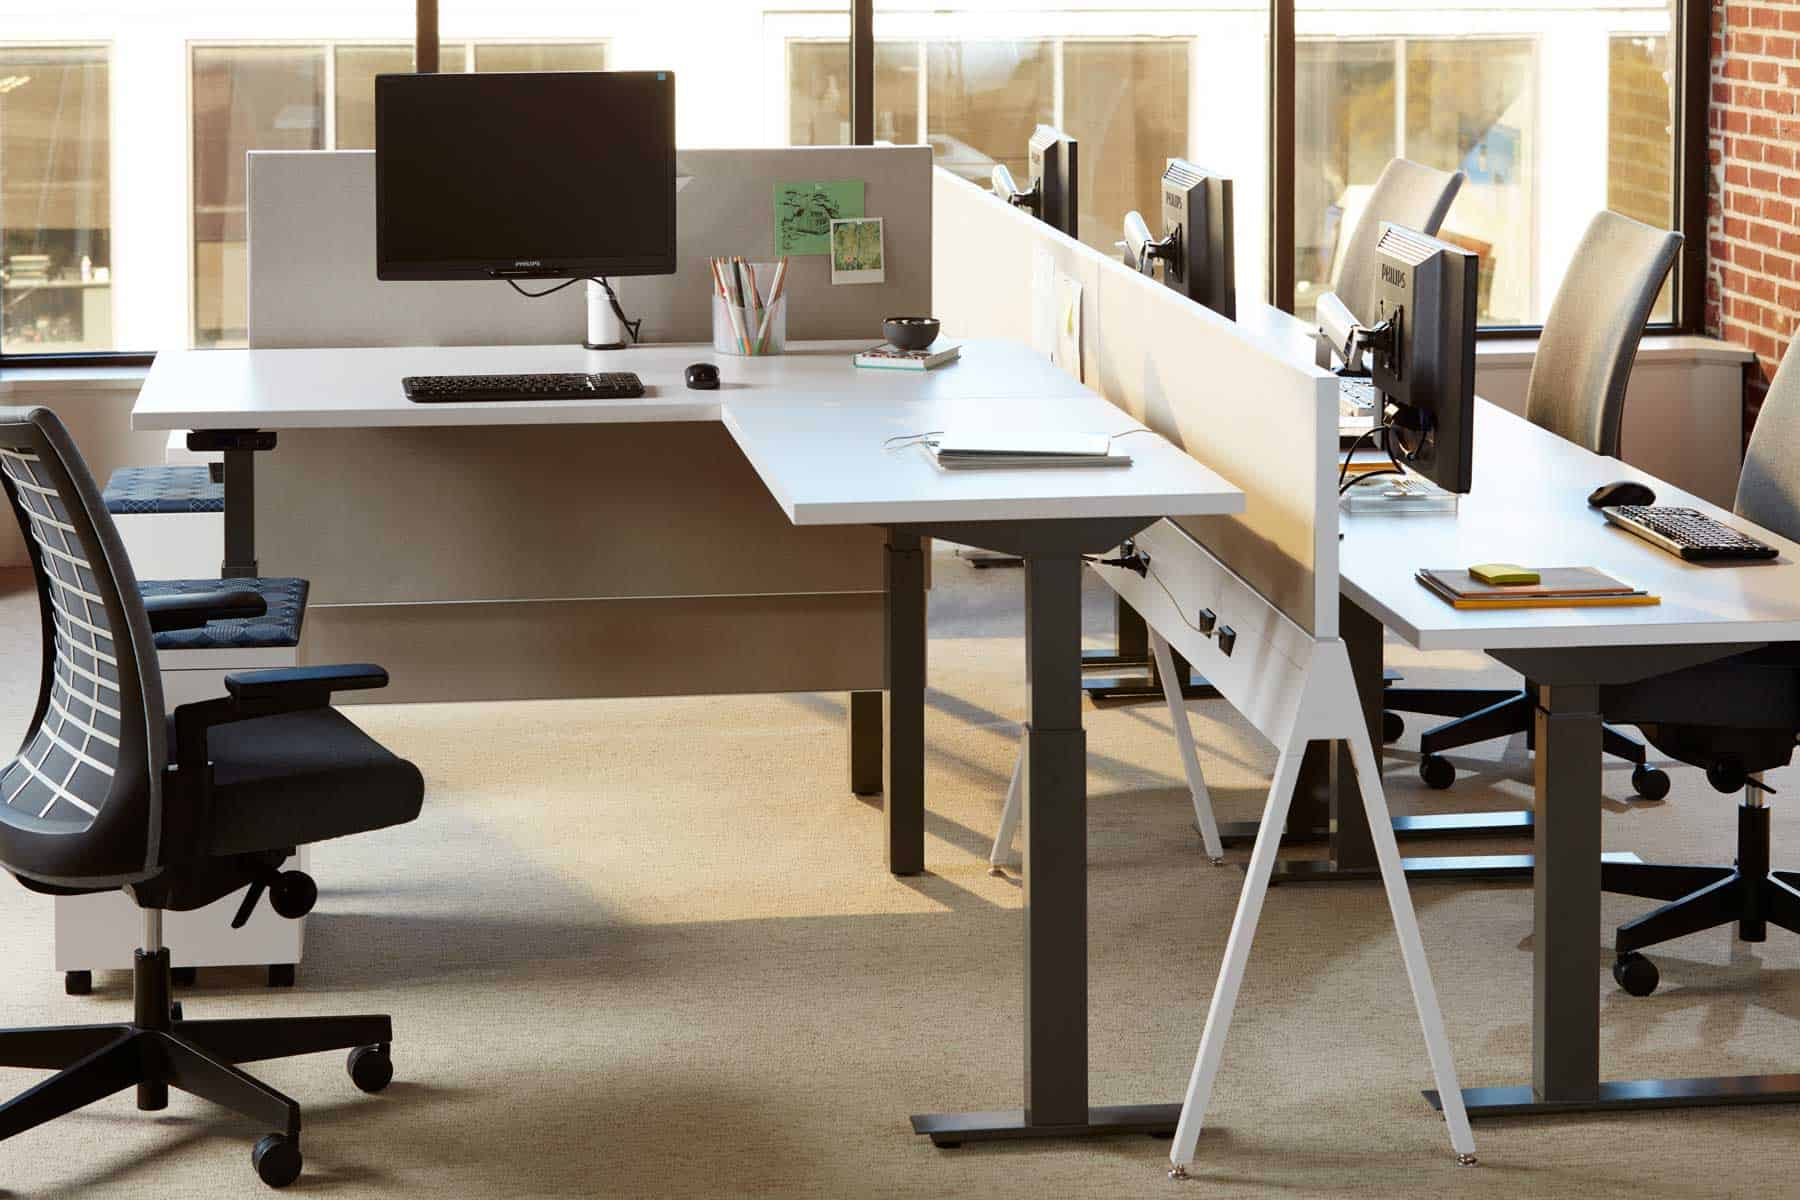 Stand-up Workstations Improve Employee Satisfaction